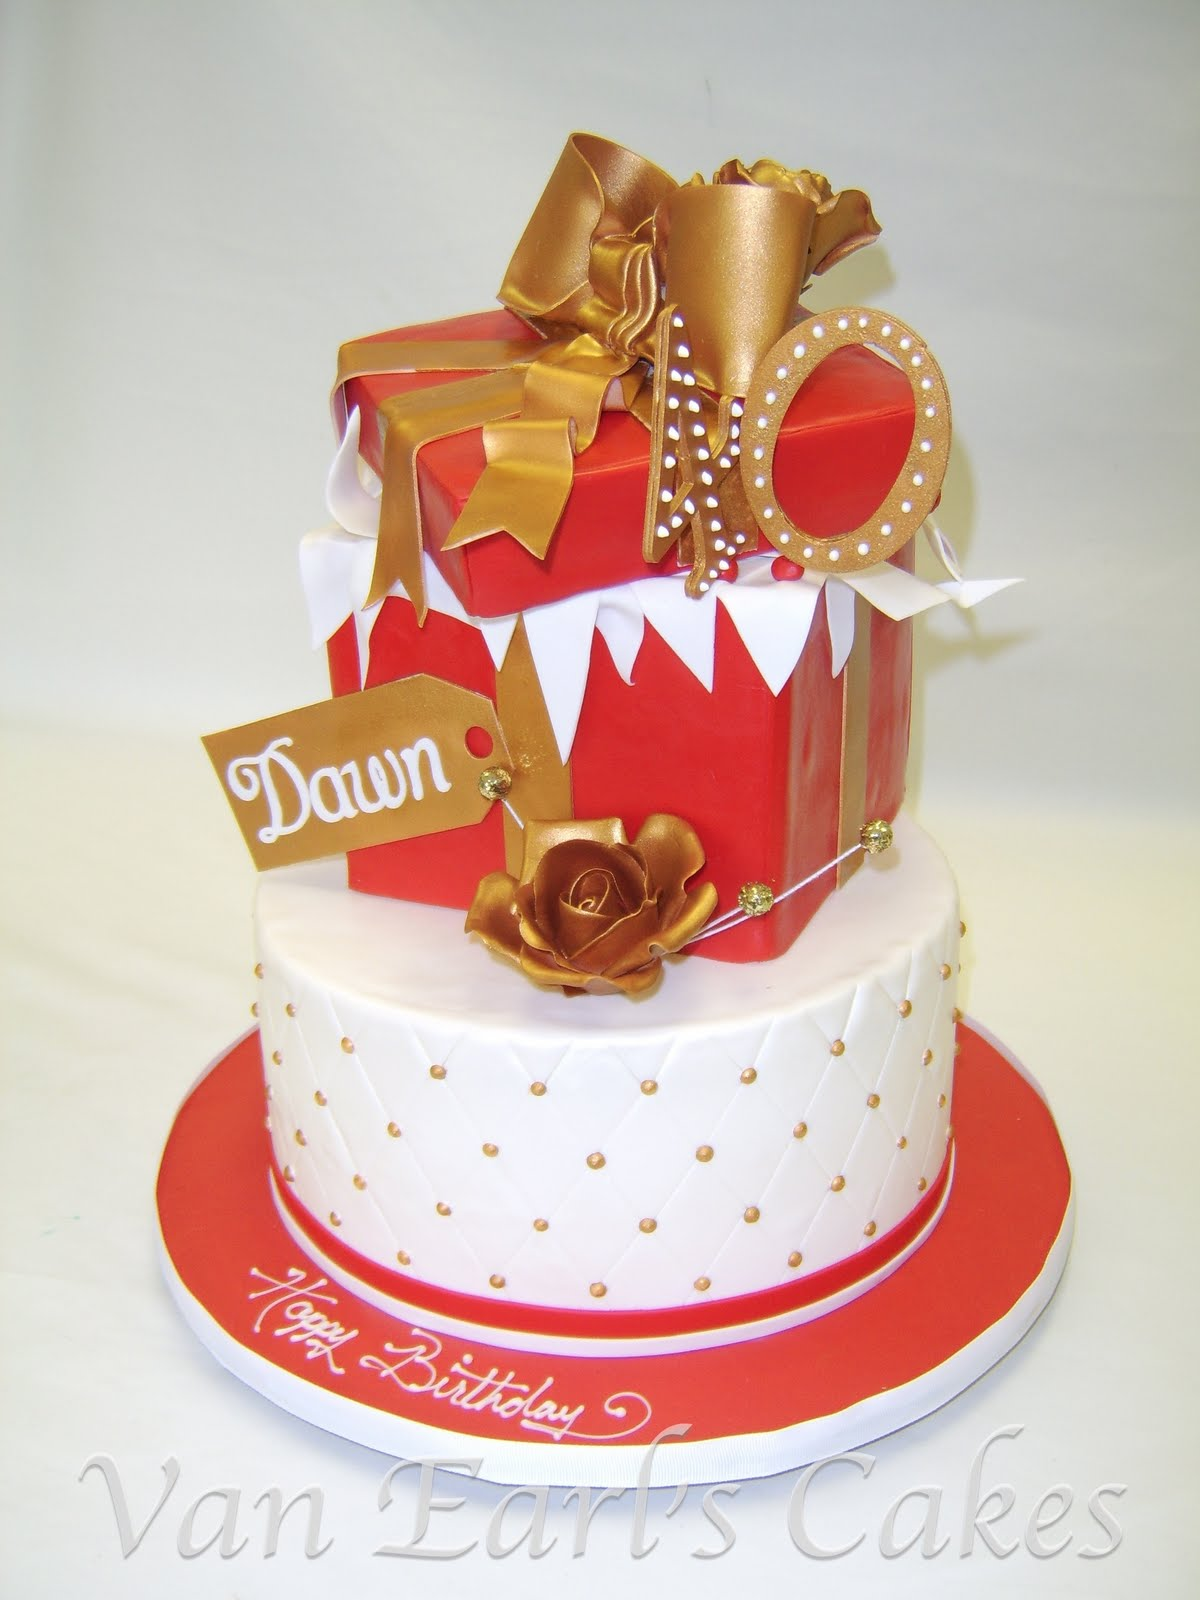 13 Photos of Red And Gold 40th Anniversary Cakes